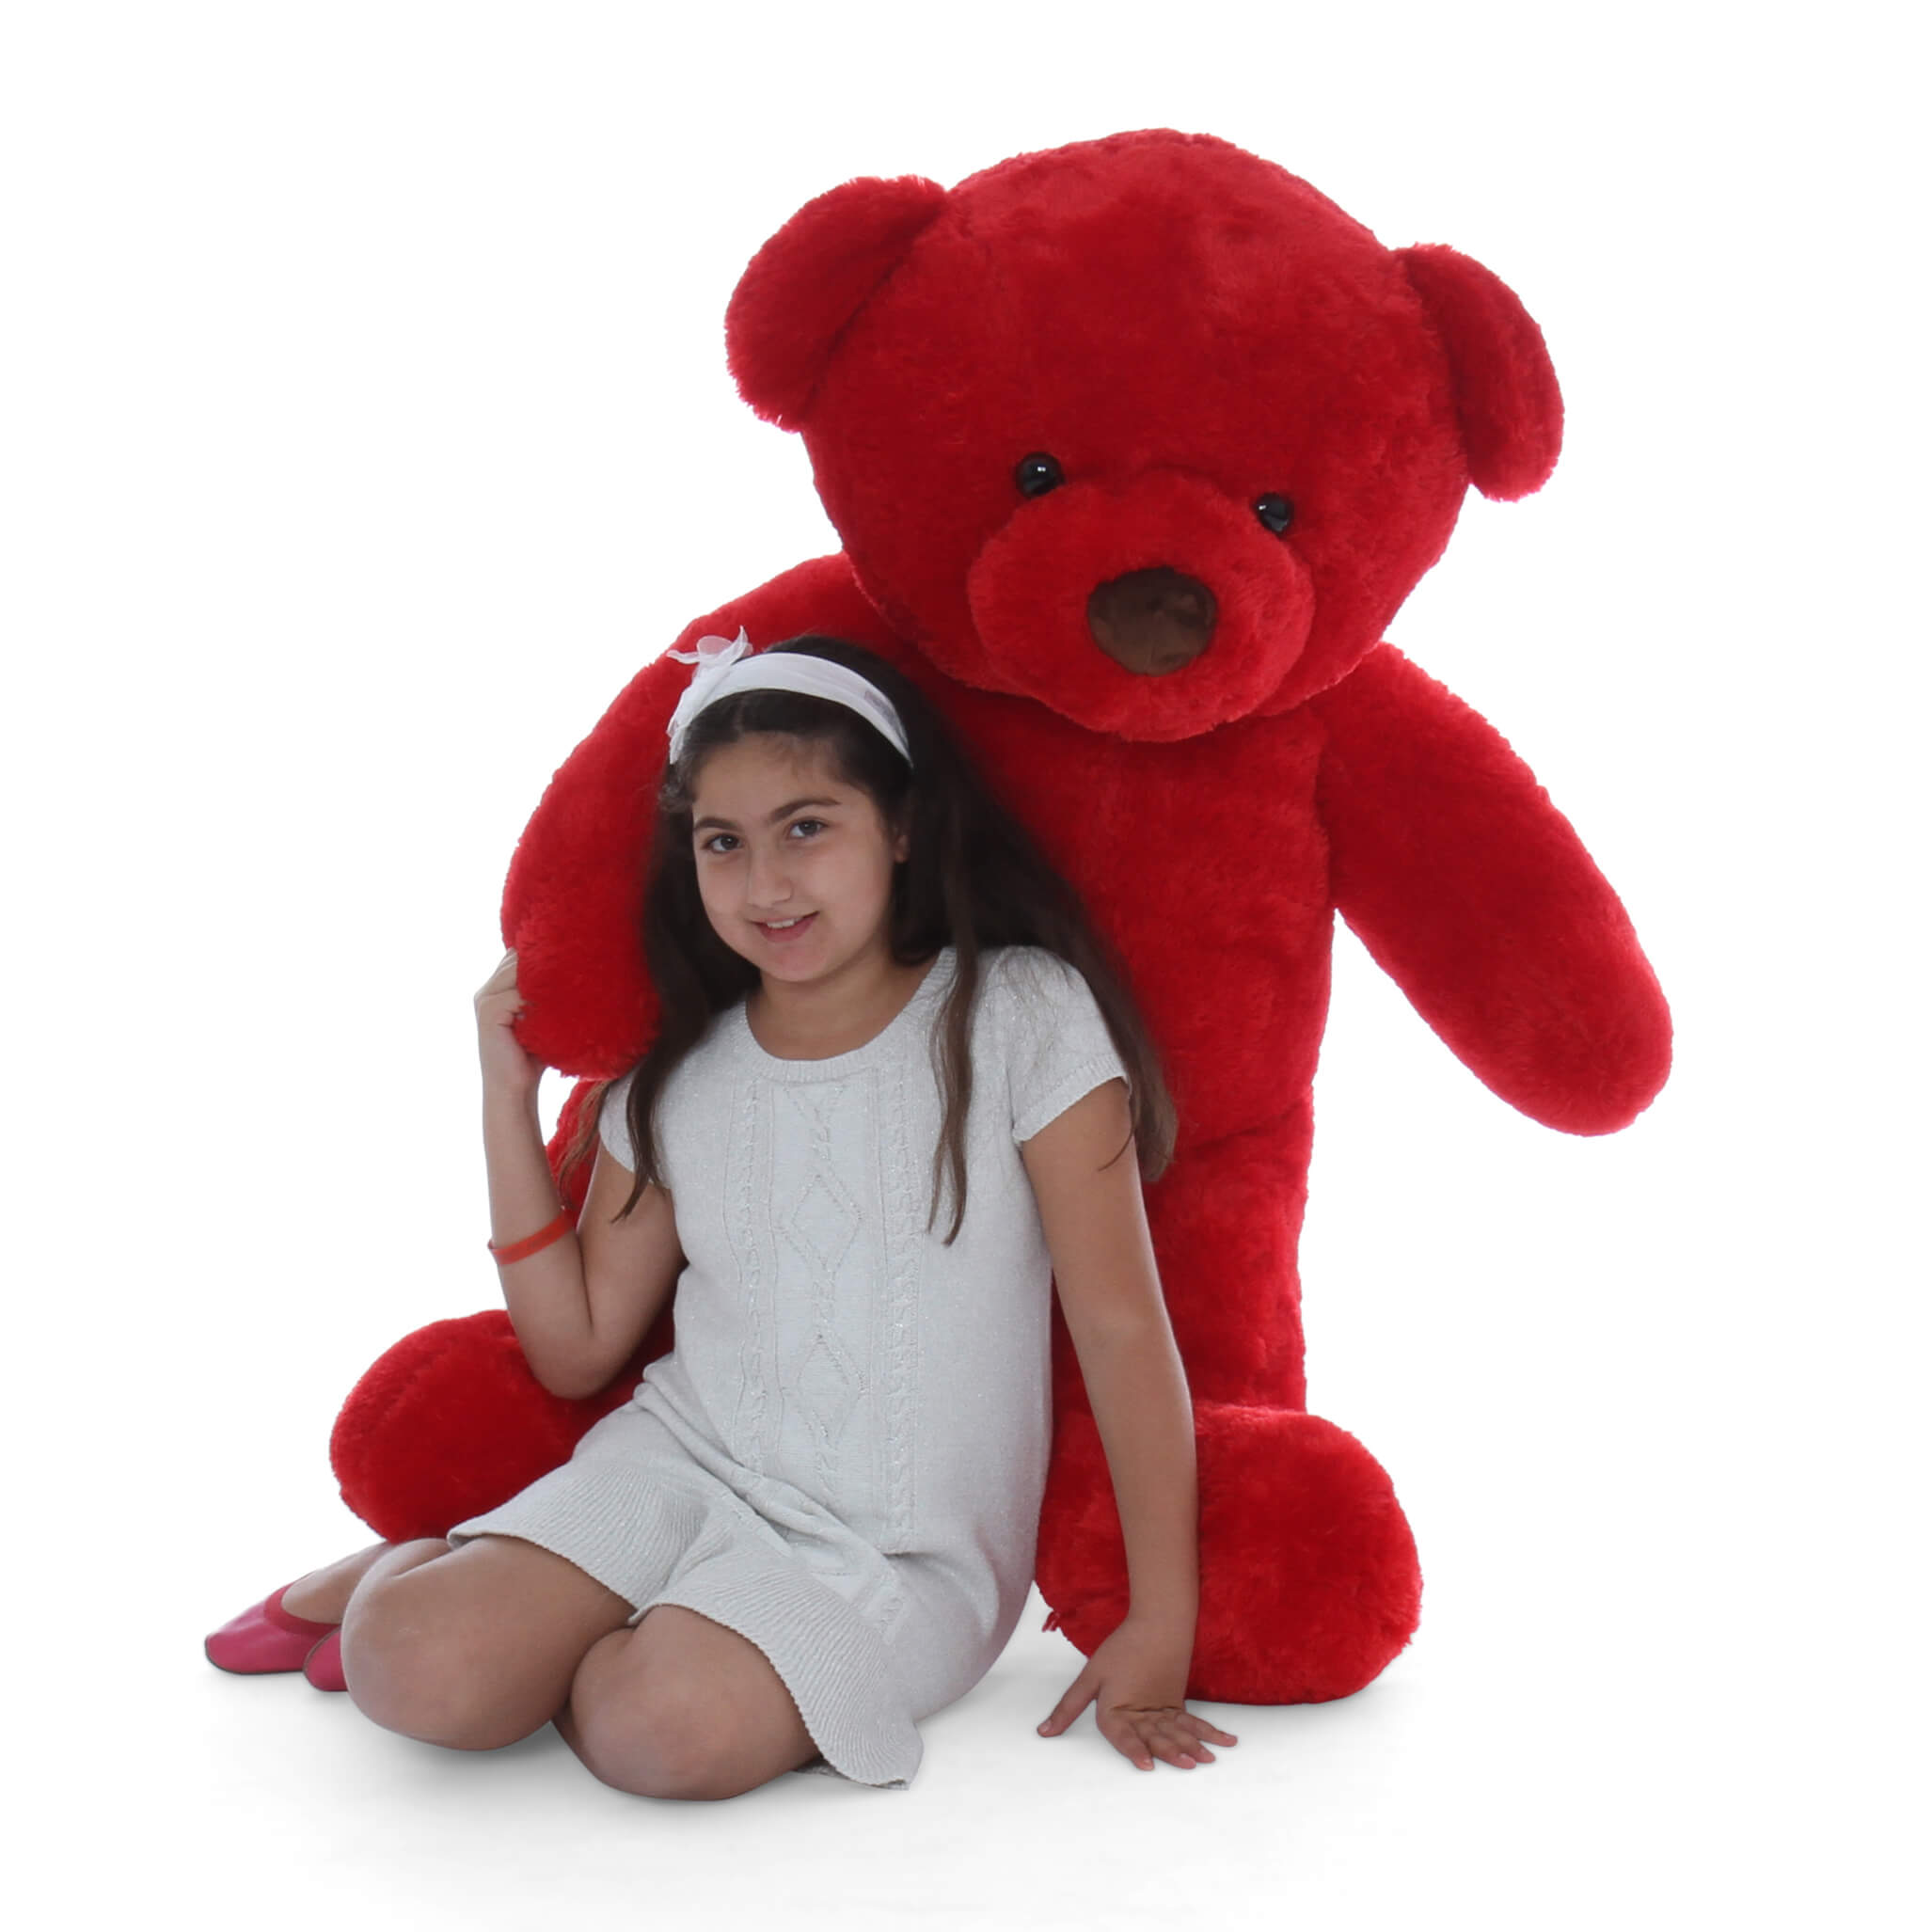 adorable-huggable-extra-giant-soft-plush-teddy-bear-48in-plump-red-riley-chubs-1.jpg